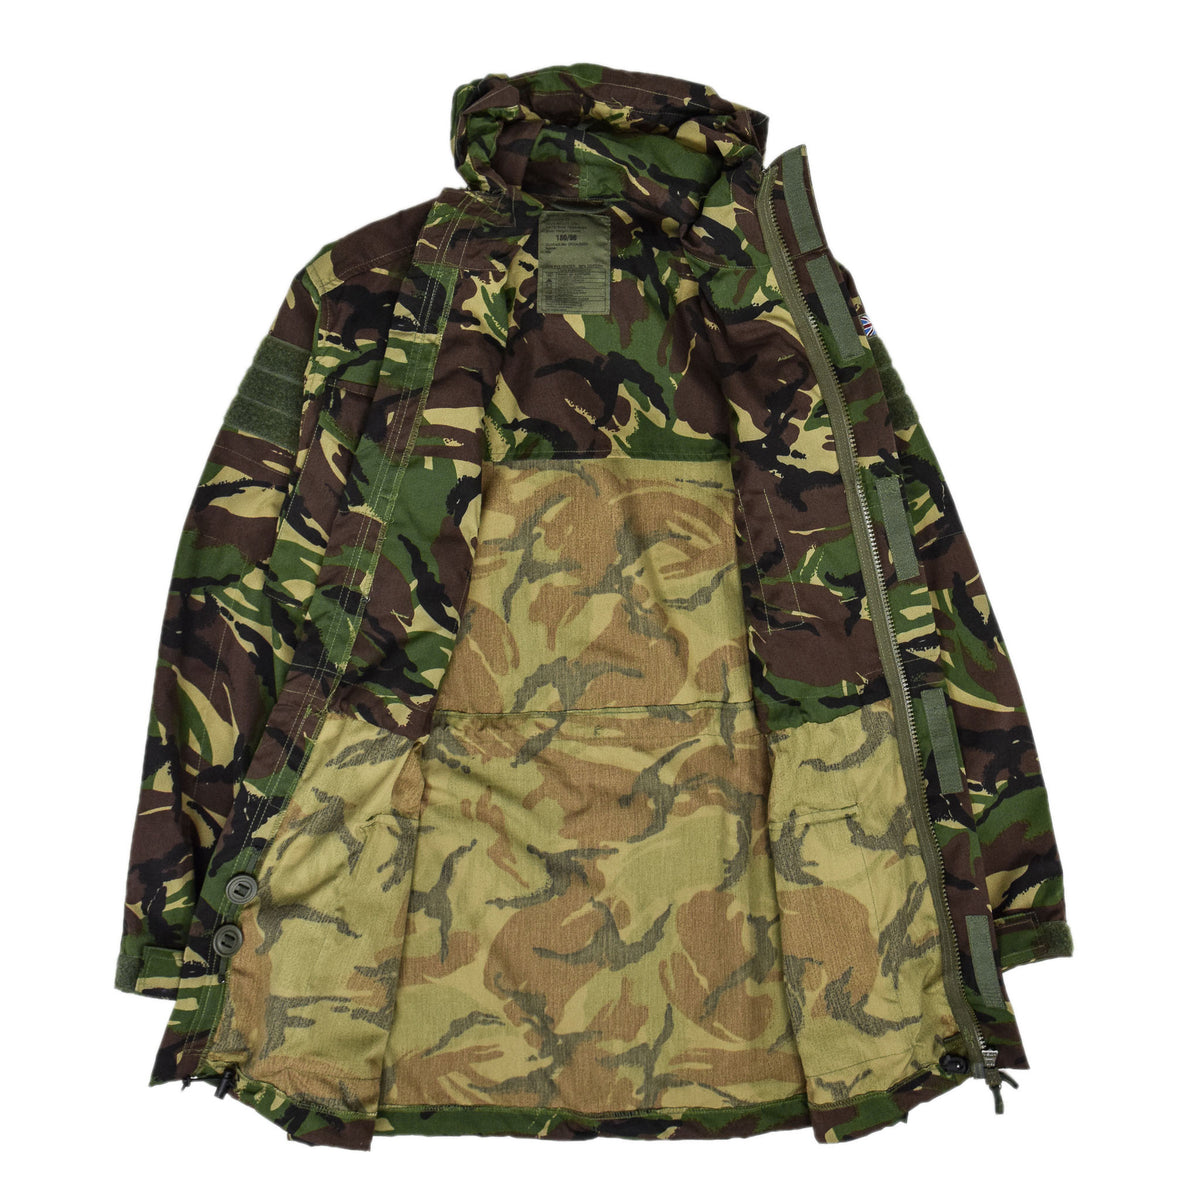 Vintage British Army Combat Smock Windproof Woodland DP Camo Jacket M / L INTERNAL